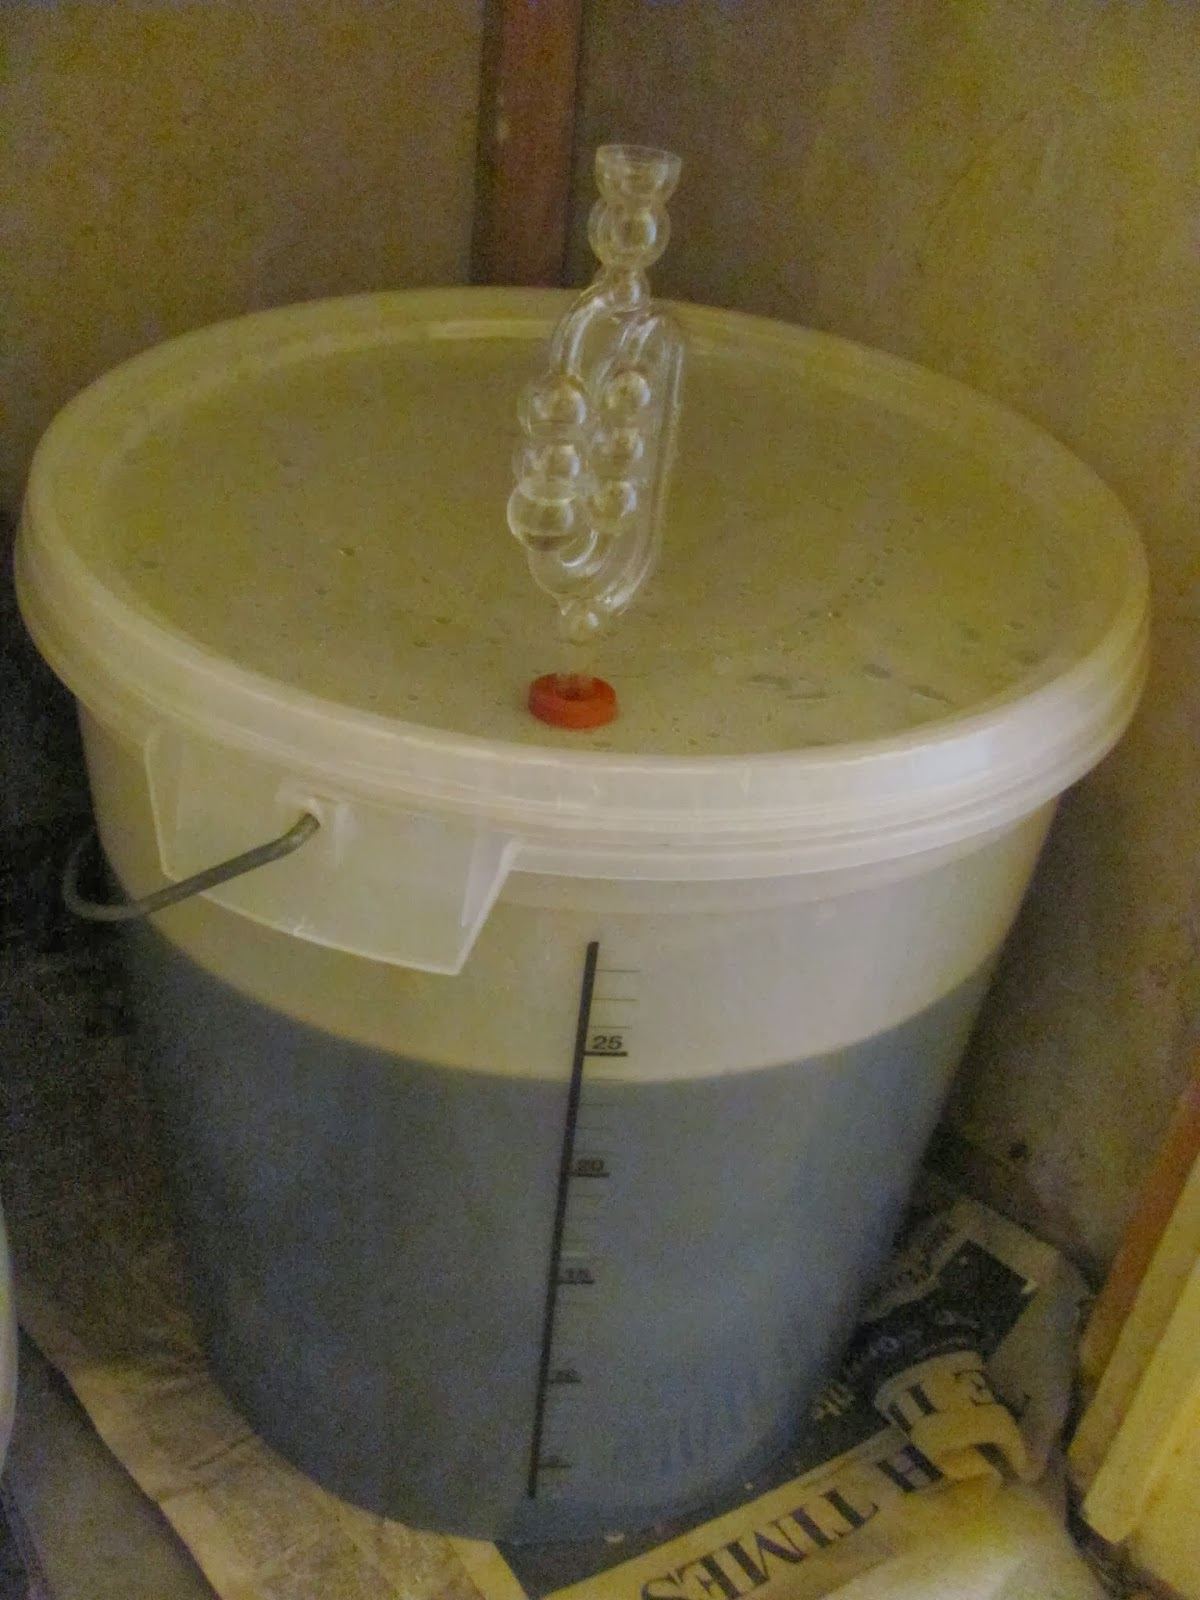 Fermenter is filled and sealed for fermentation